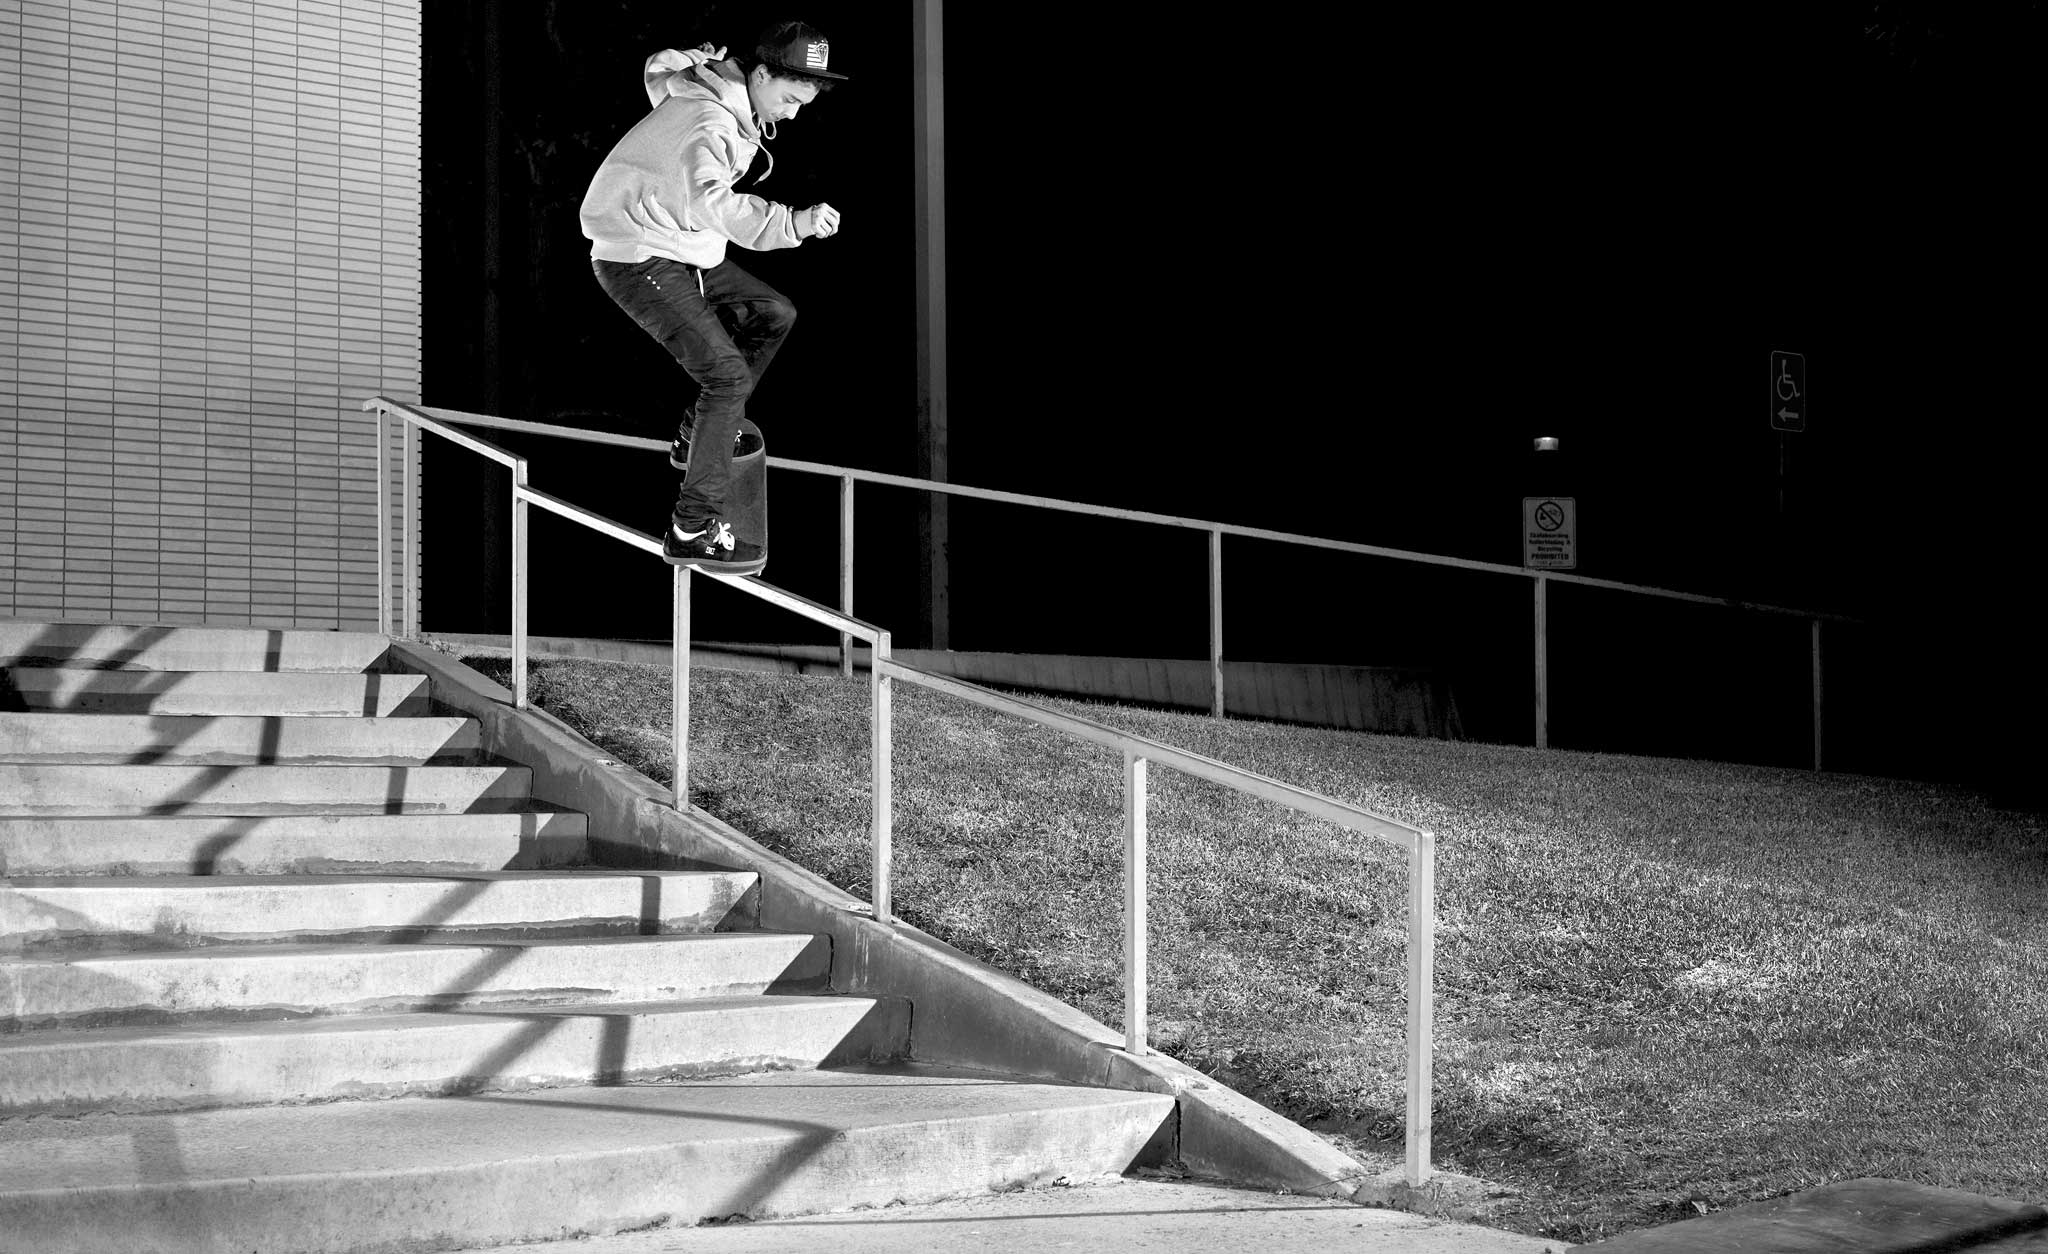 Precision skating like this frontside nose grind, drop down to frontside nose grind is what sets Nyjah Huston apart from the rest.